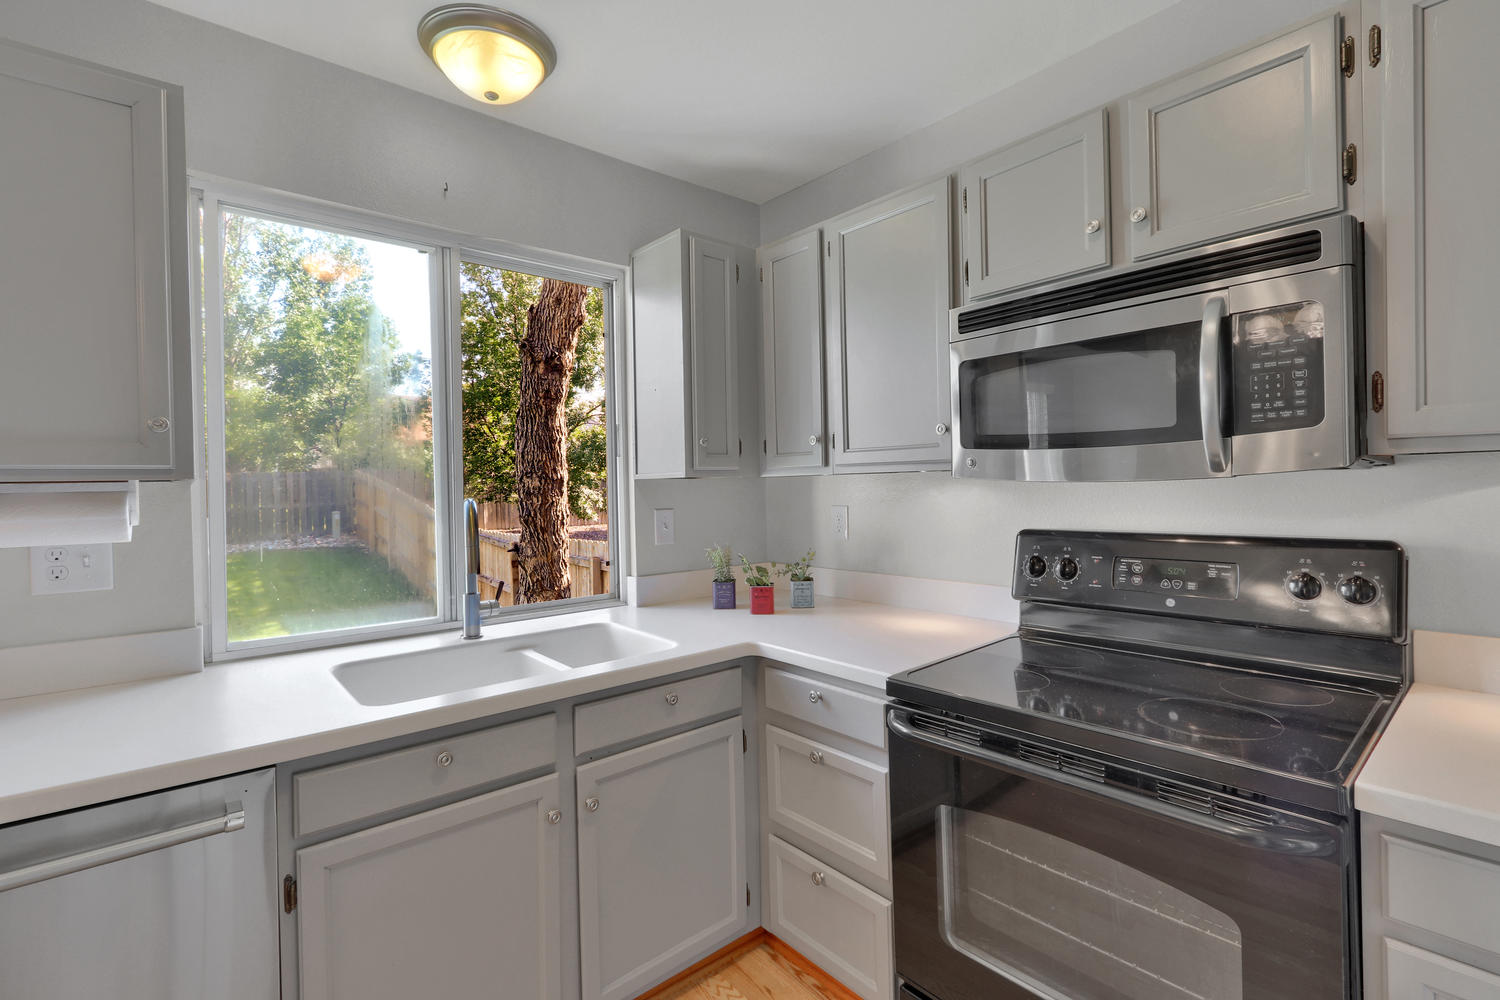 11246 W 104th Ave Westminster-large-011-012-Kitchen-1500x1000-72dpi.jpg